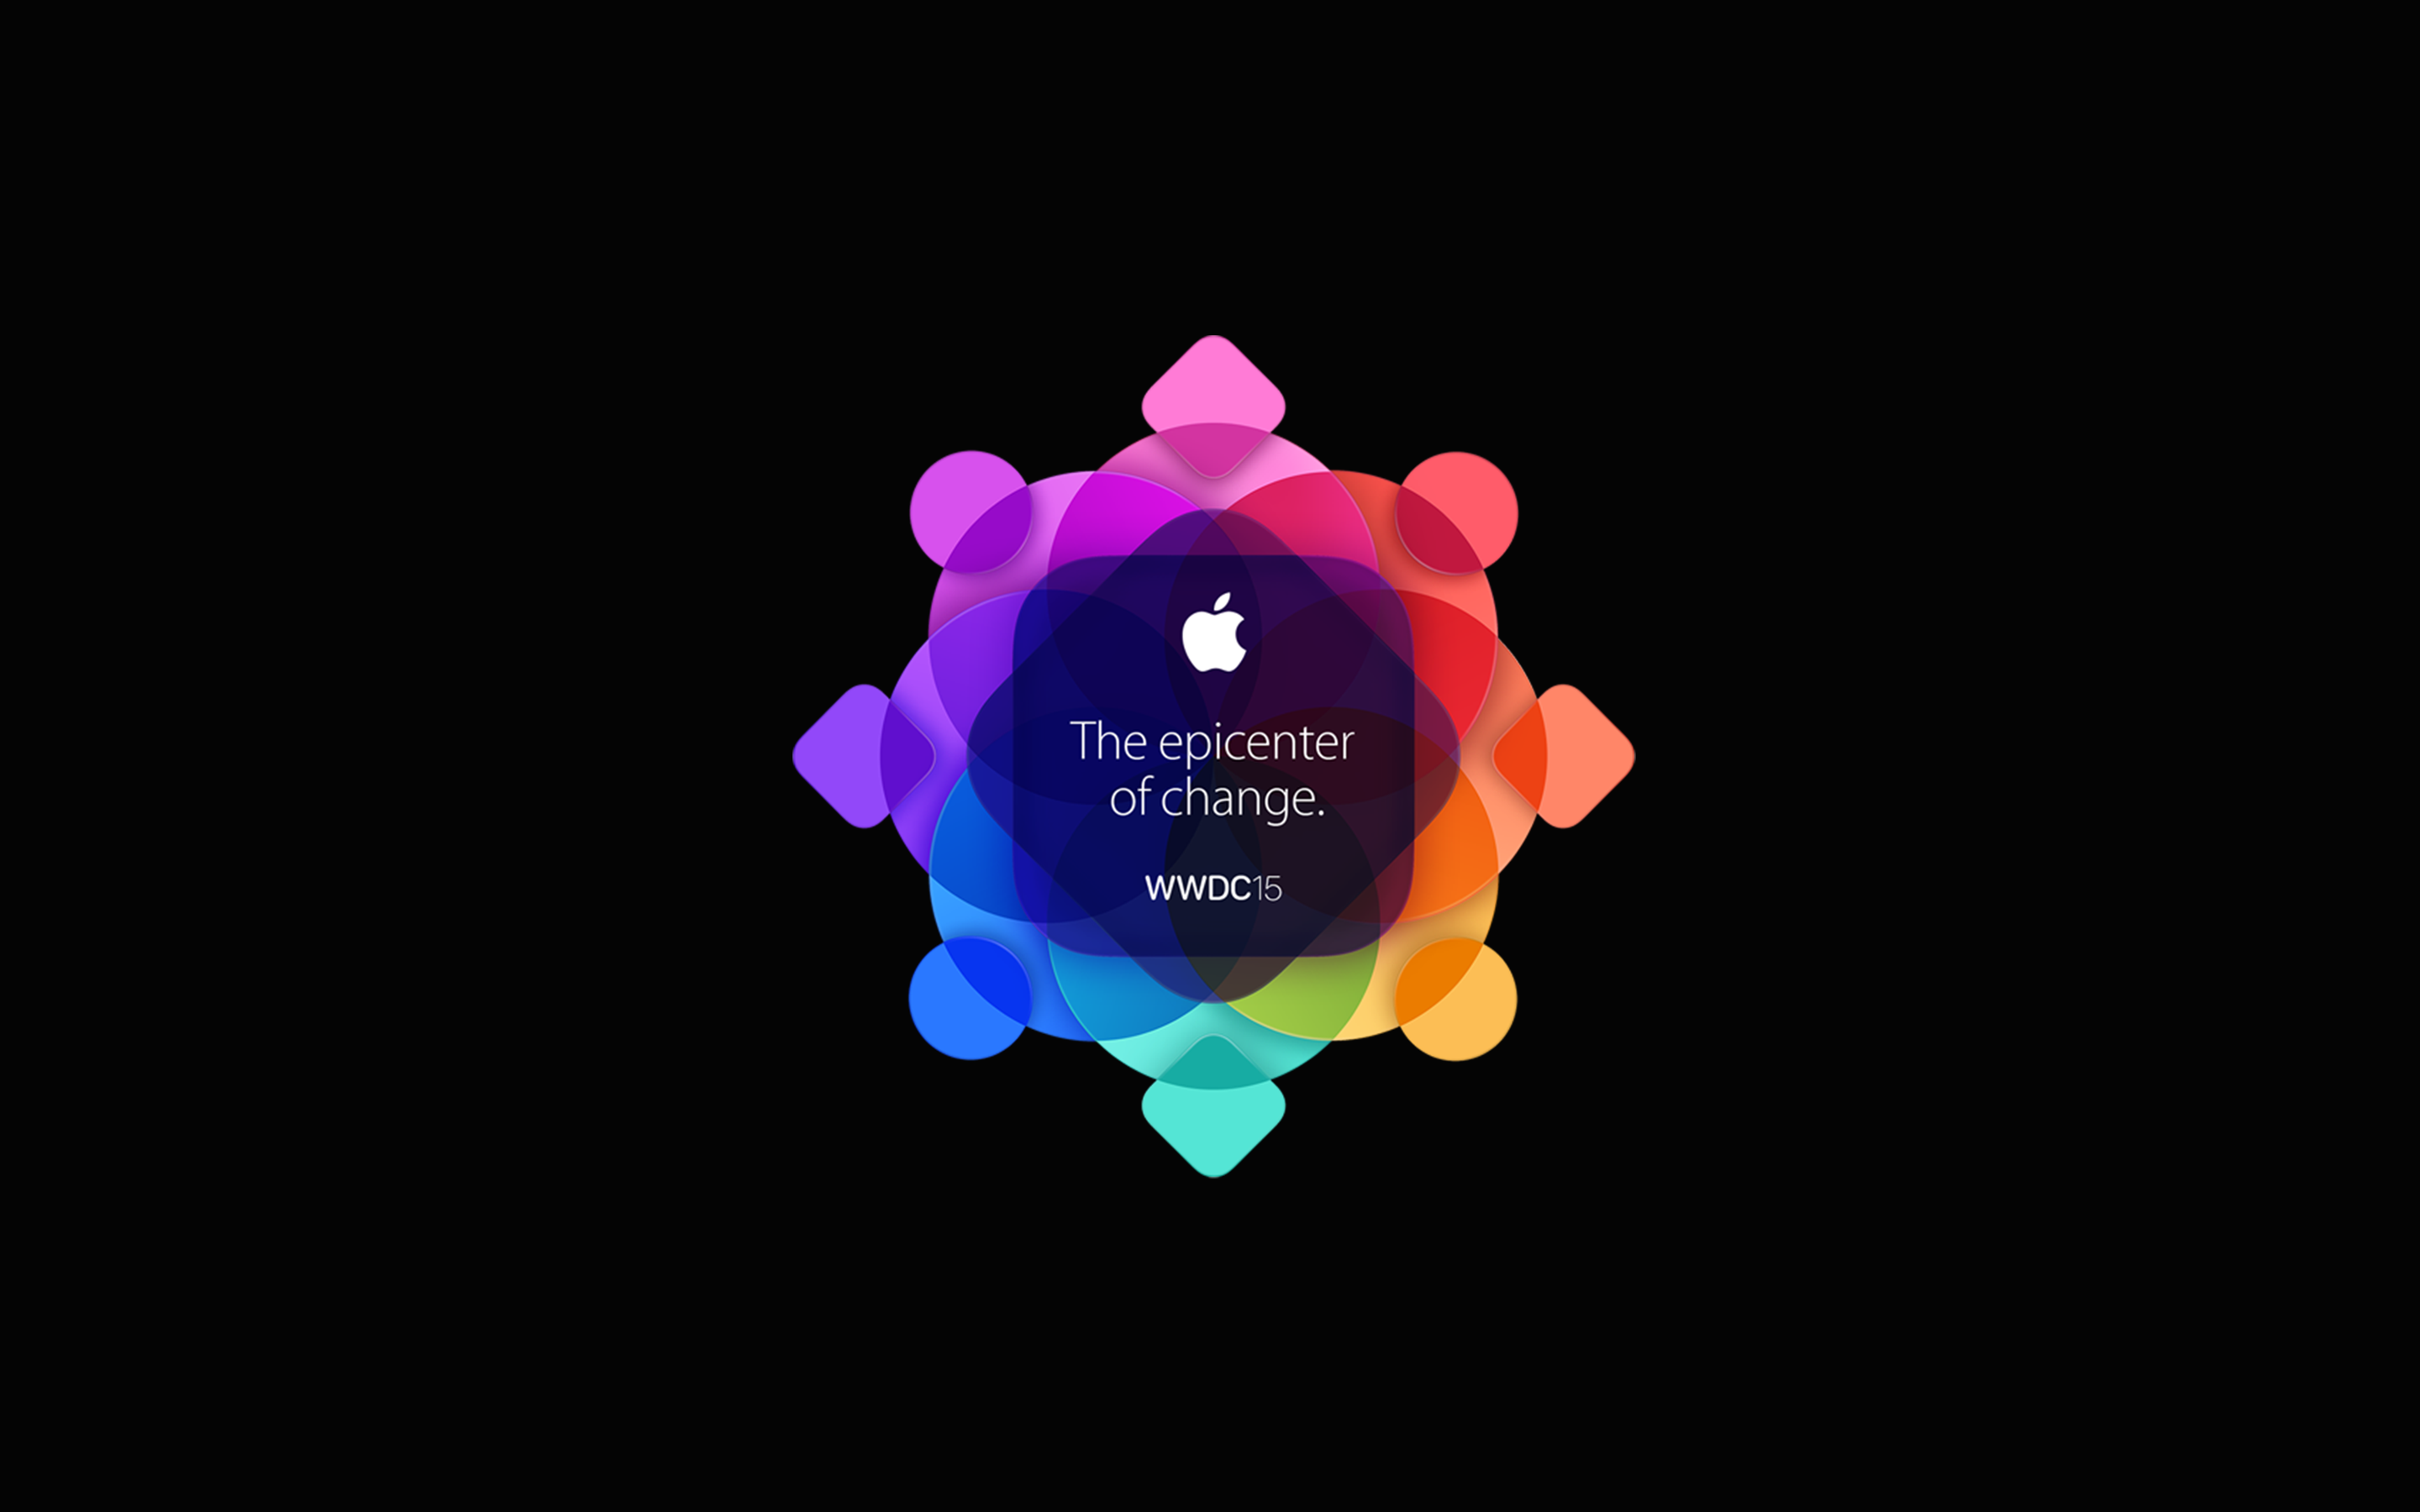 wwdc 2015 wallpapers  the epicenter of change